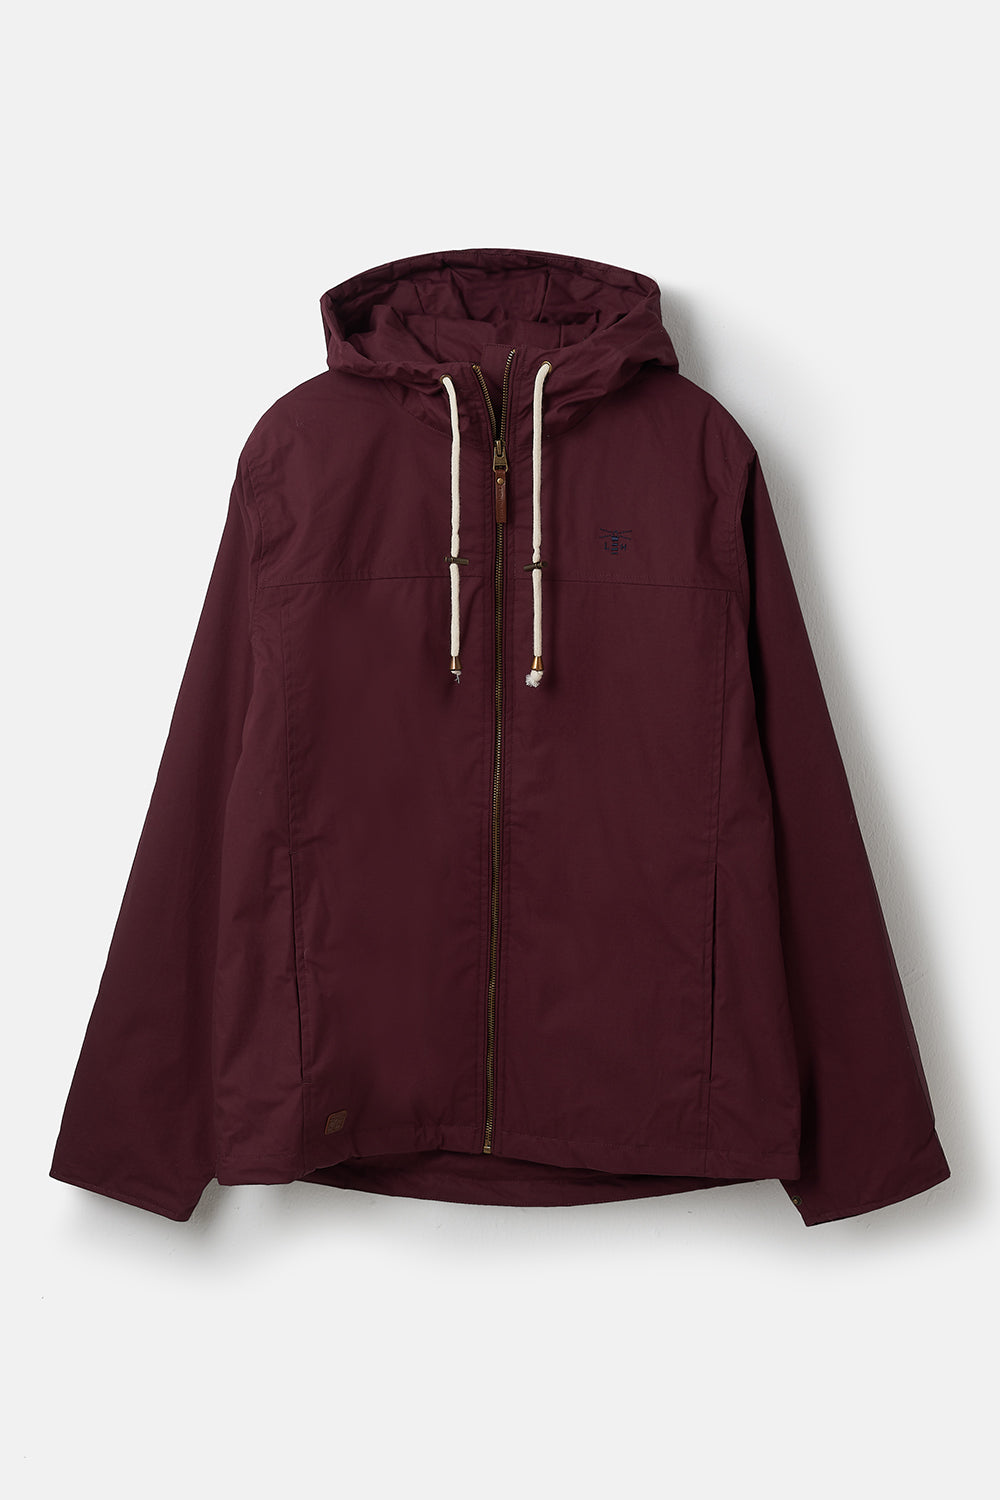 Faroe Coat - Oxblood